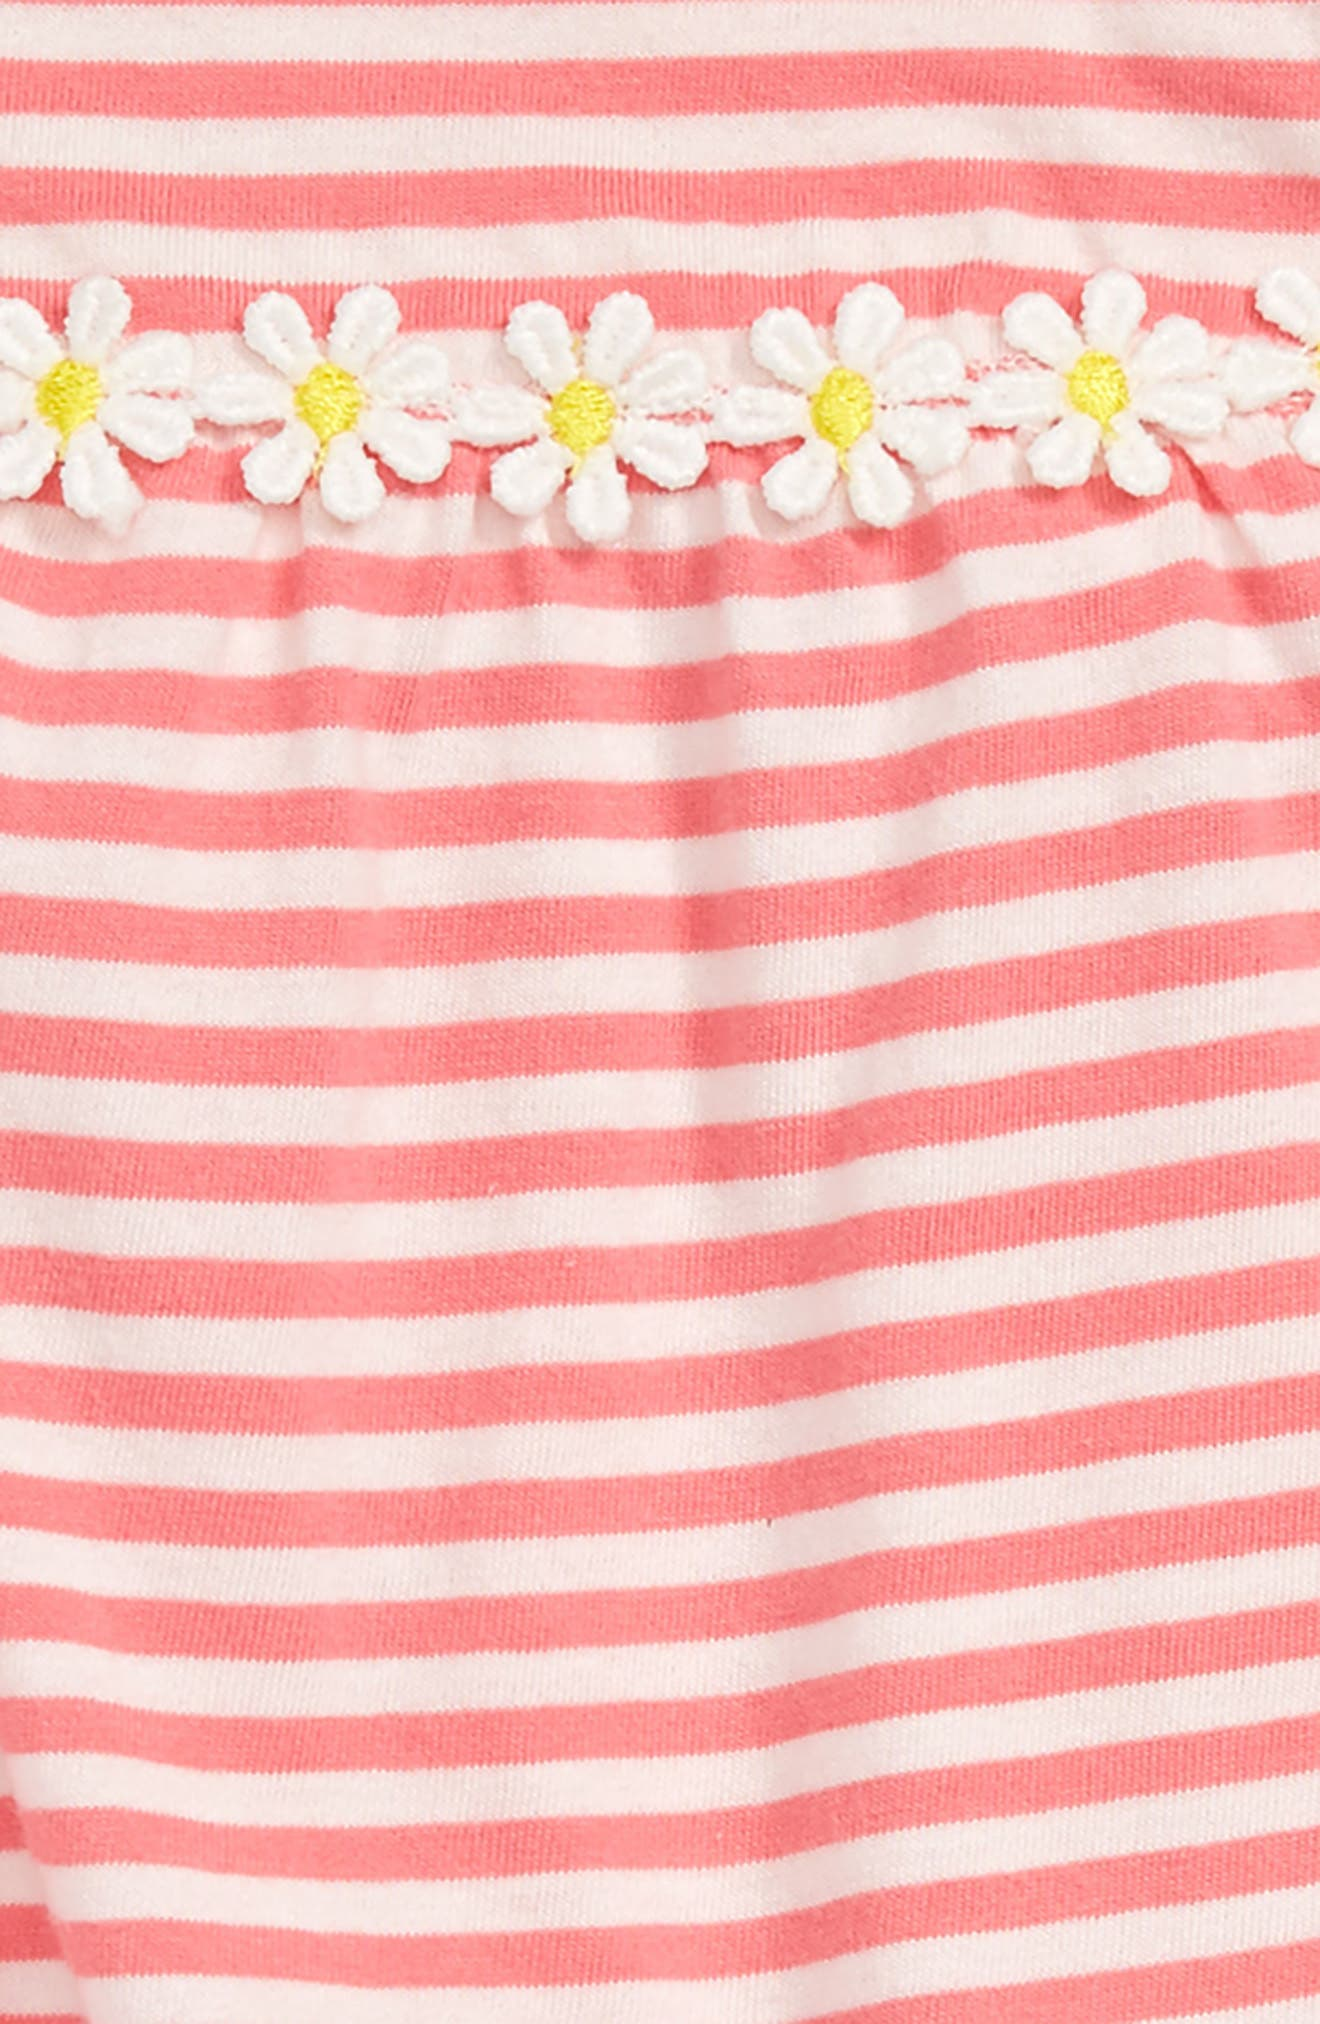 Jersey Summer Dress,                             Alternate thumbnail 2, color,                             Strawberry Sorbet Pink/ Ivory